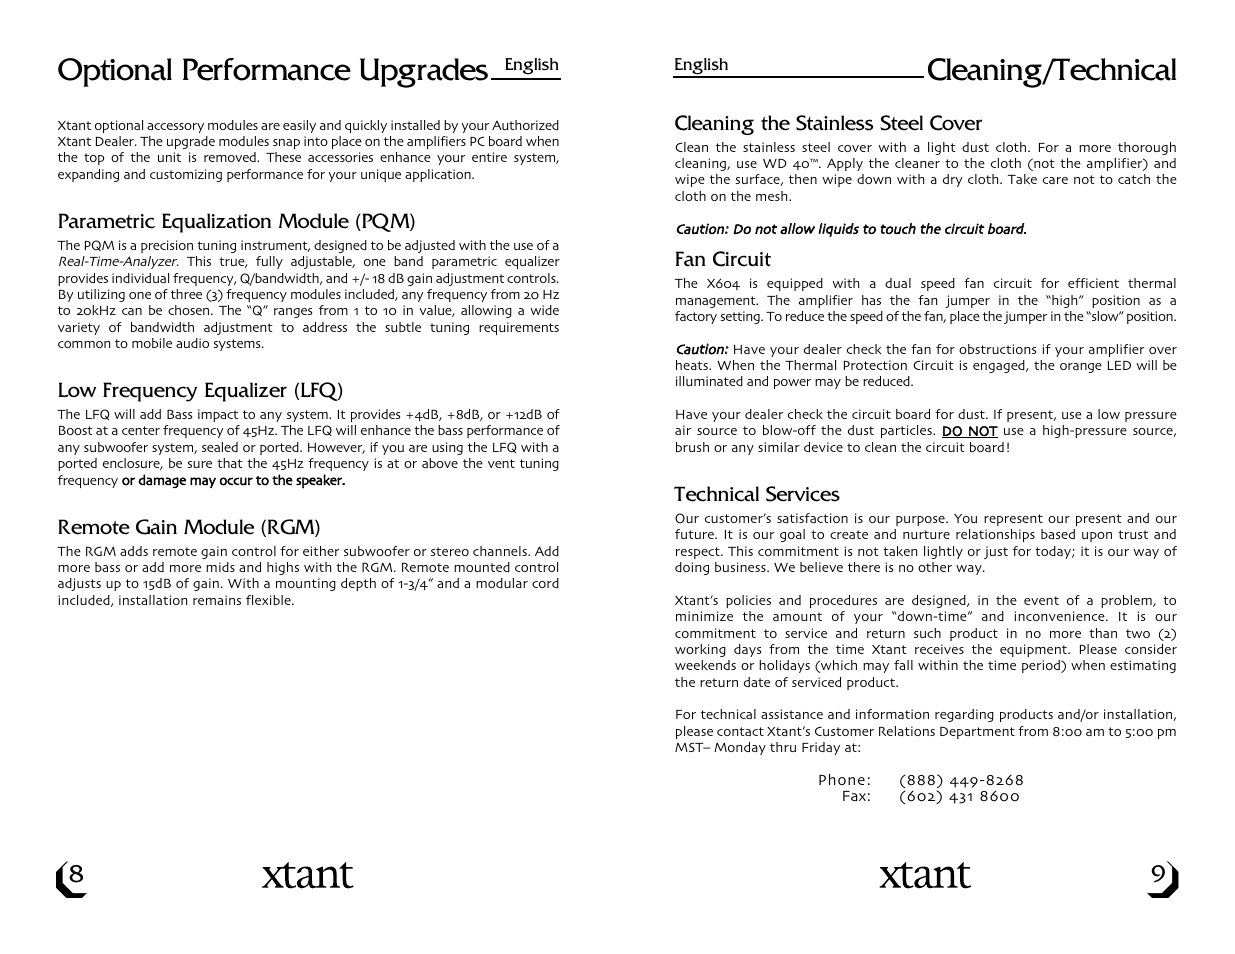 Cleaning/technical, Optional performance upgrades | Xtant